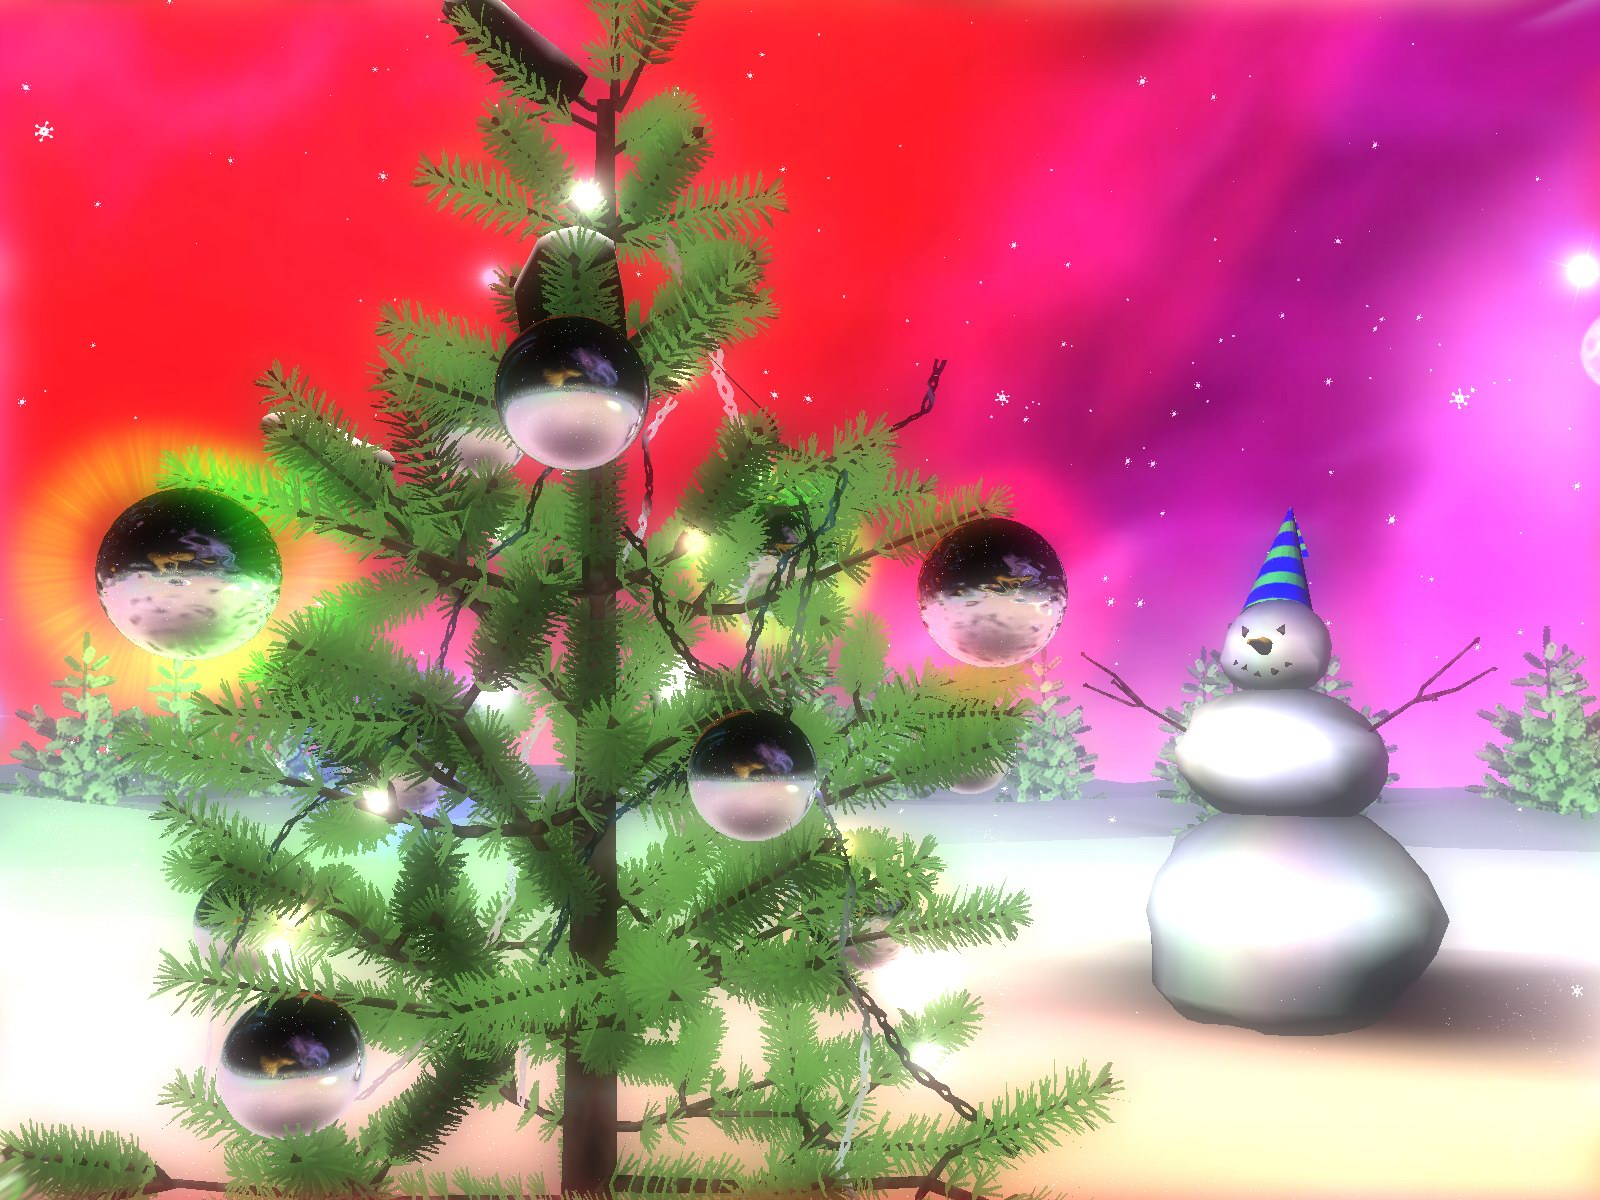 3D Christmas Space Screensaver Christmas on the other planets 1600x1200